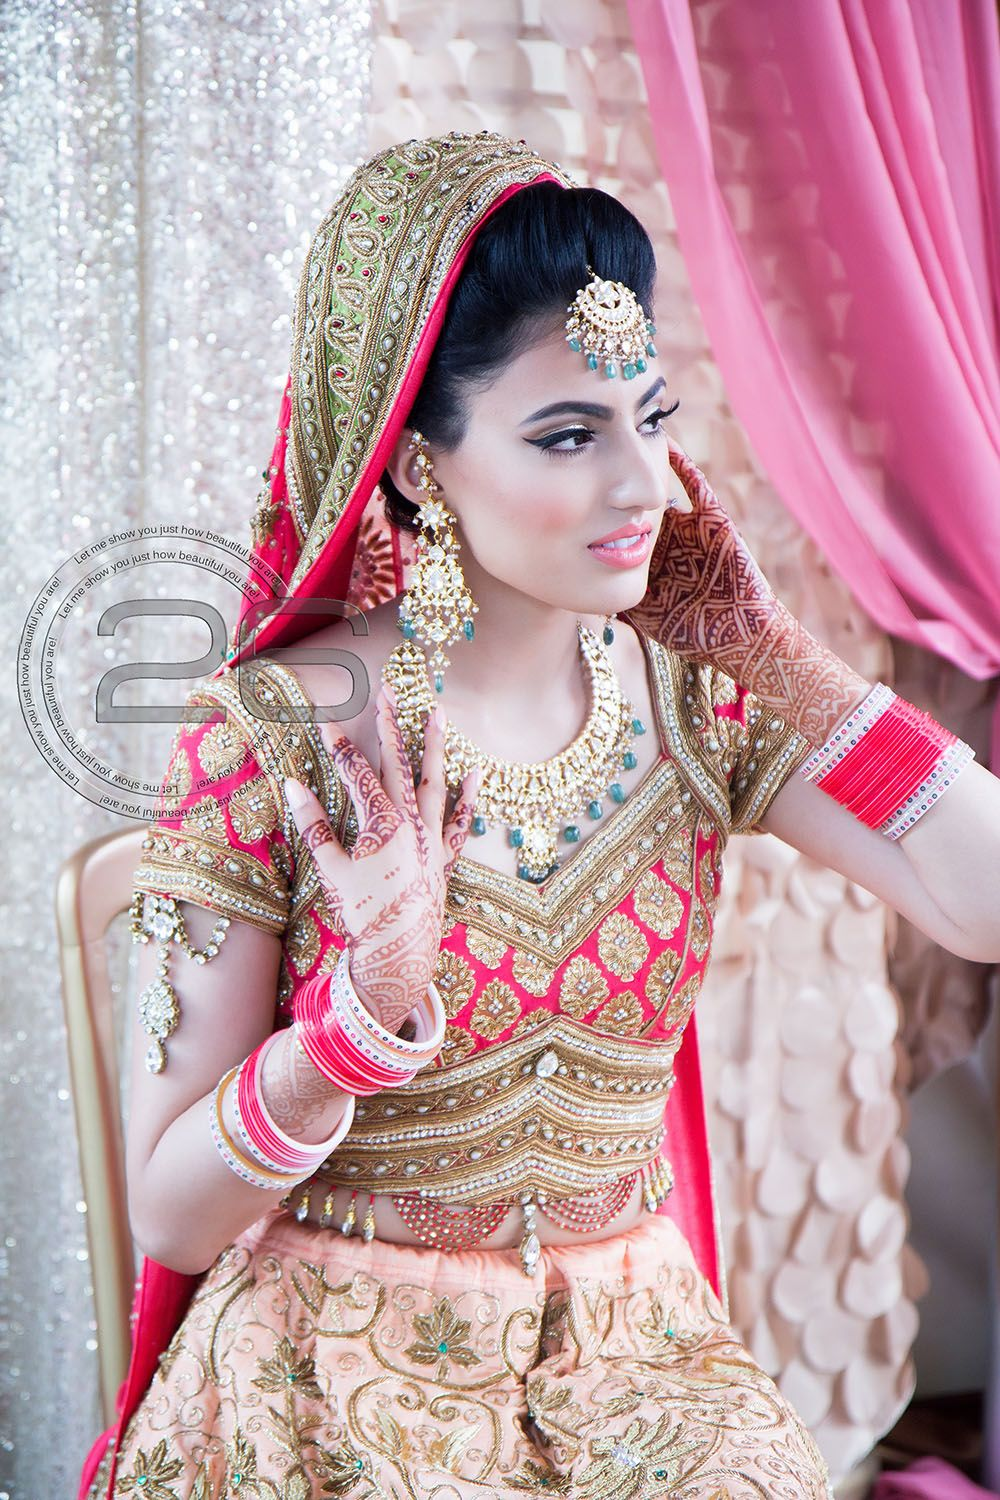 Gurpreet Grewal - Indian Bride | bridals | Pinterest | Punjabi ...